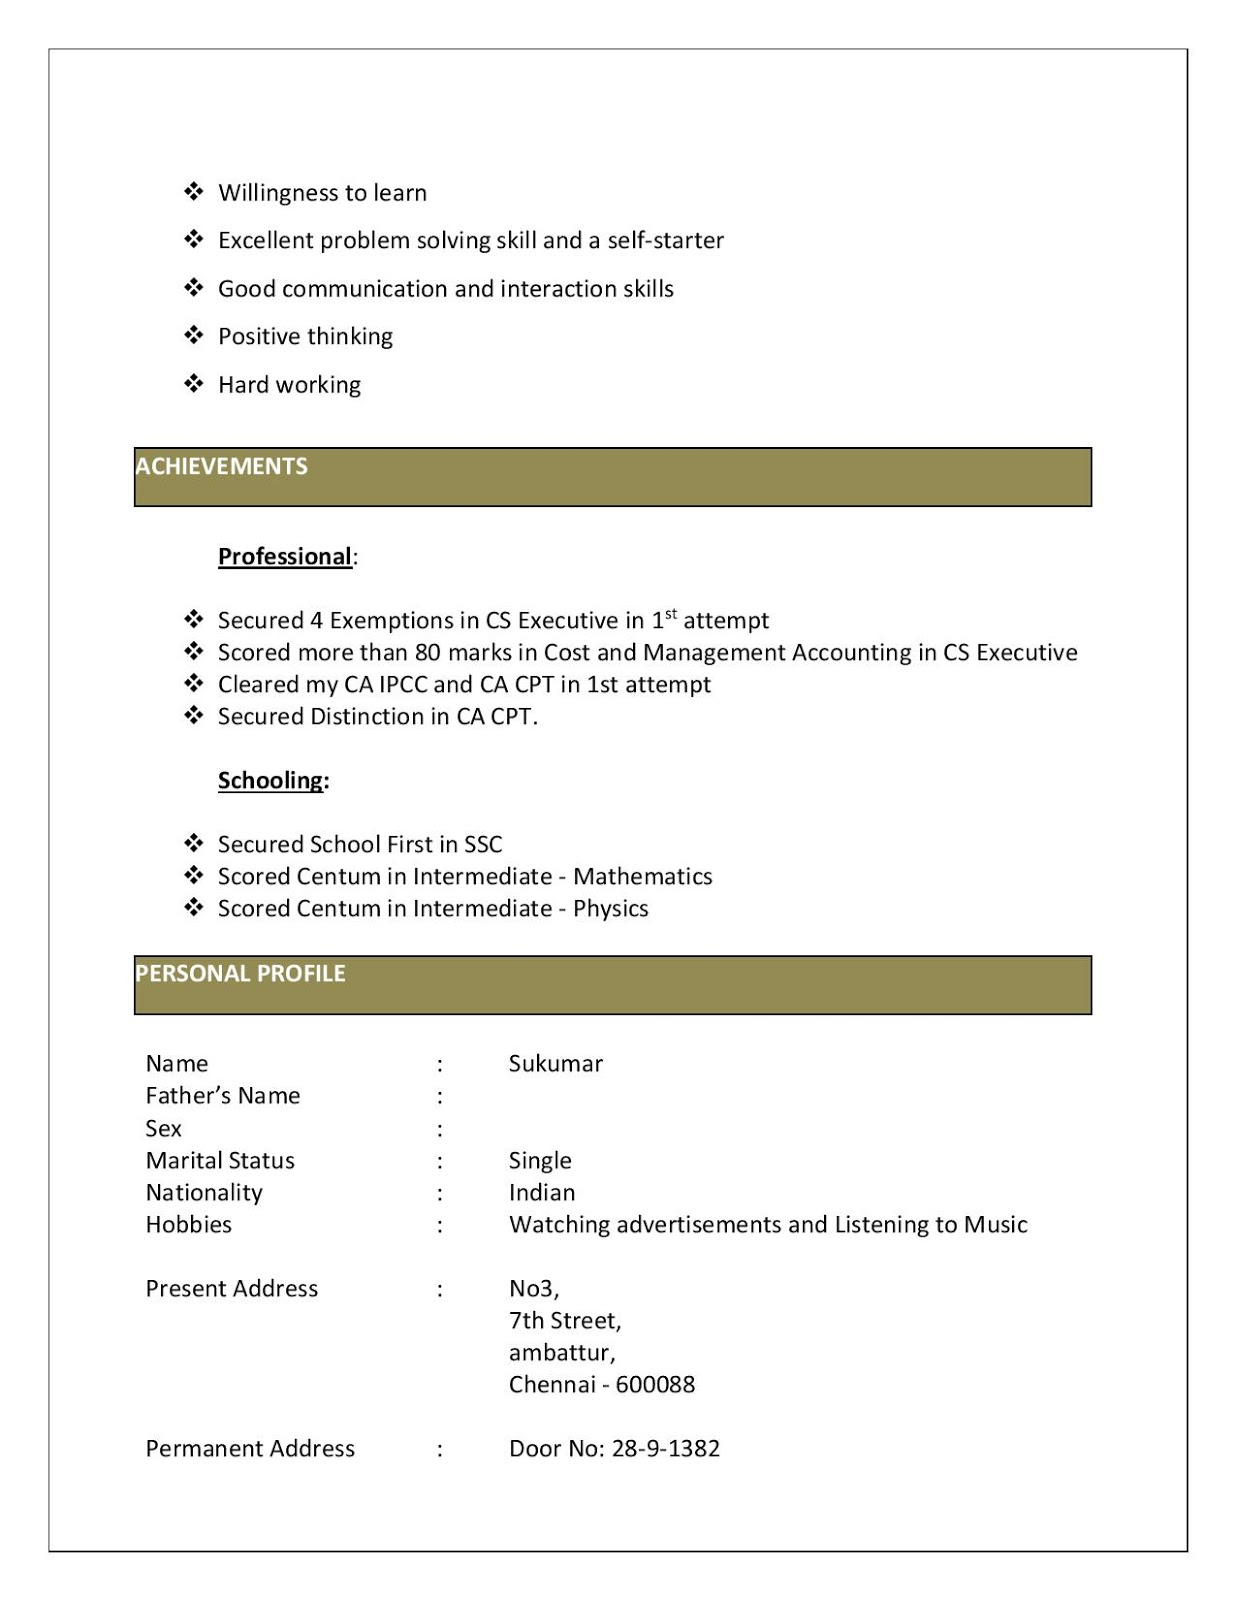 Experienced Articleship Resume Format Download in MS-Word - Resume ...